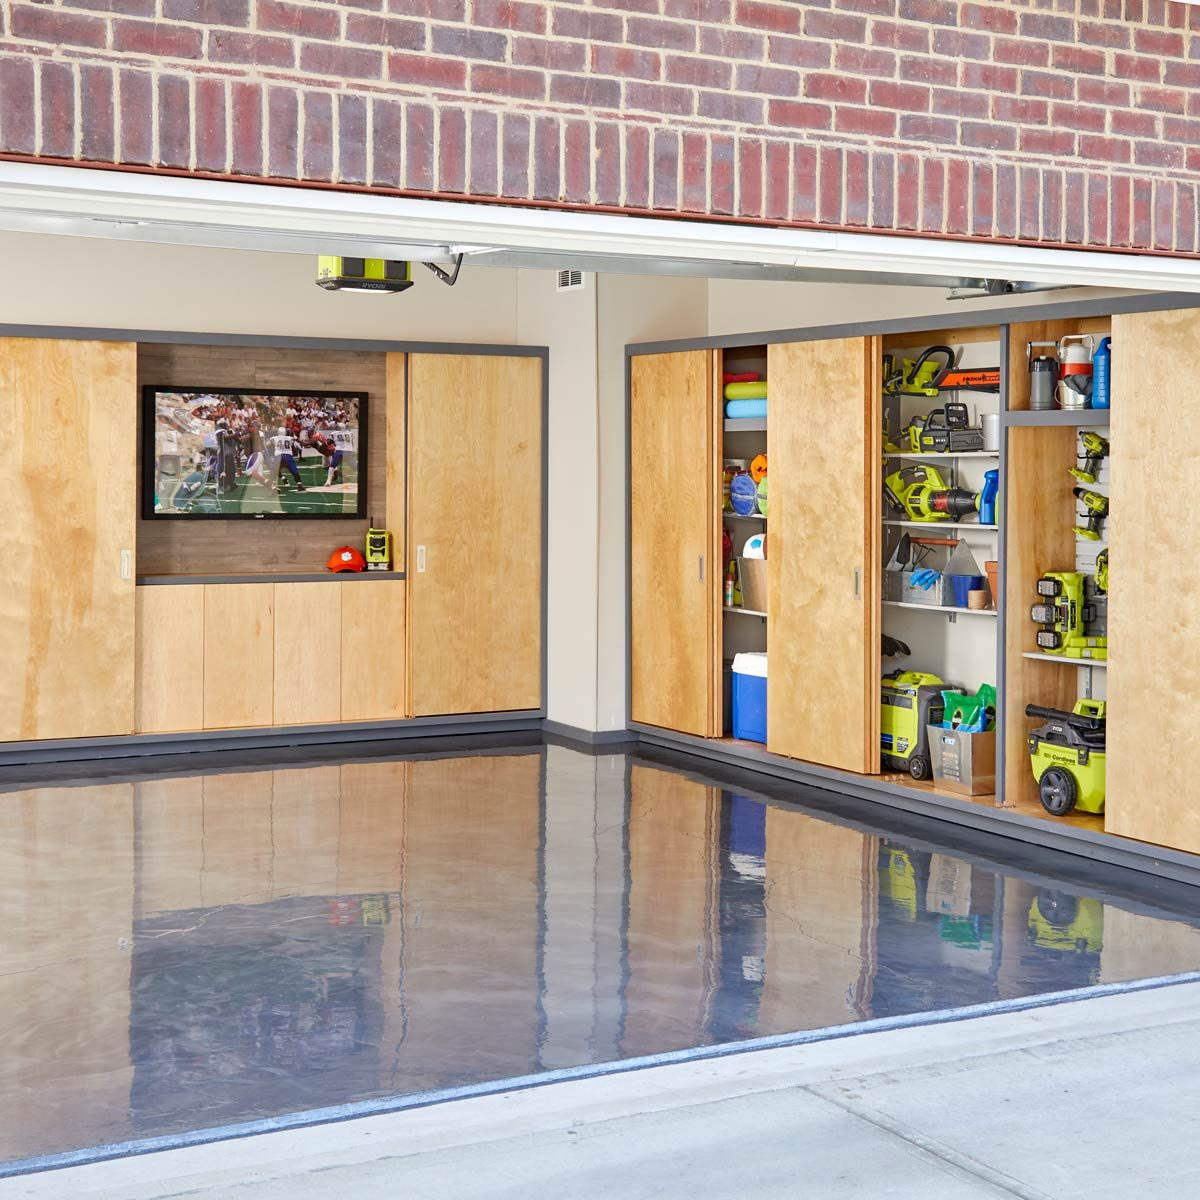 8 Garage Paint Ideas To Consider Inside And Out The Family Handyman